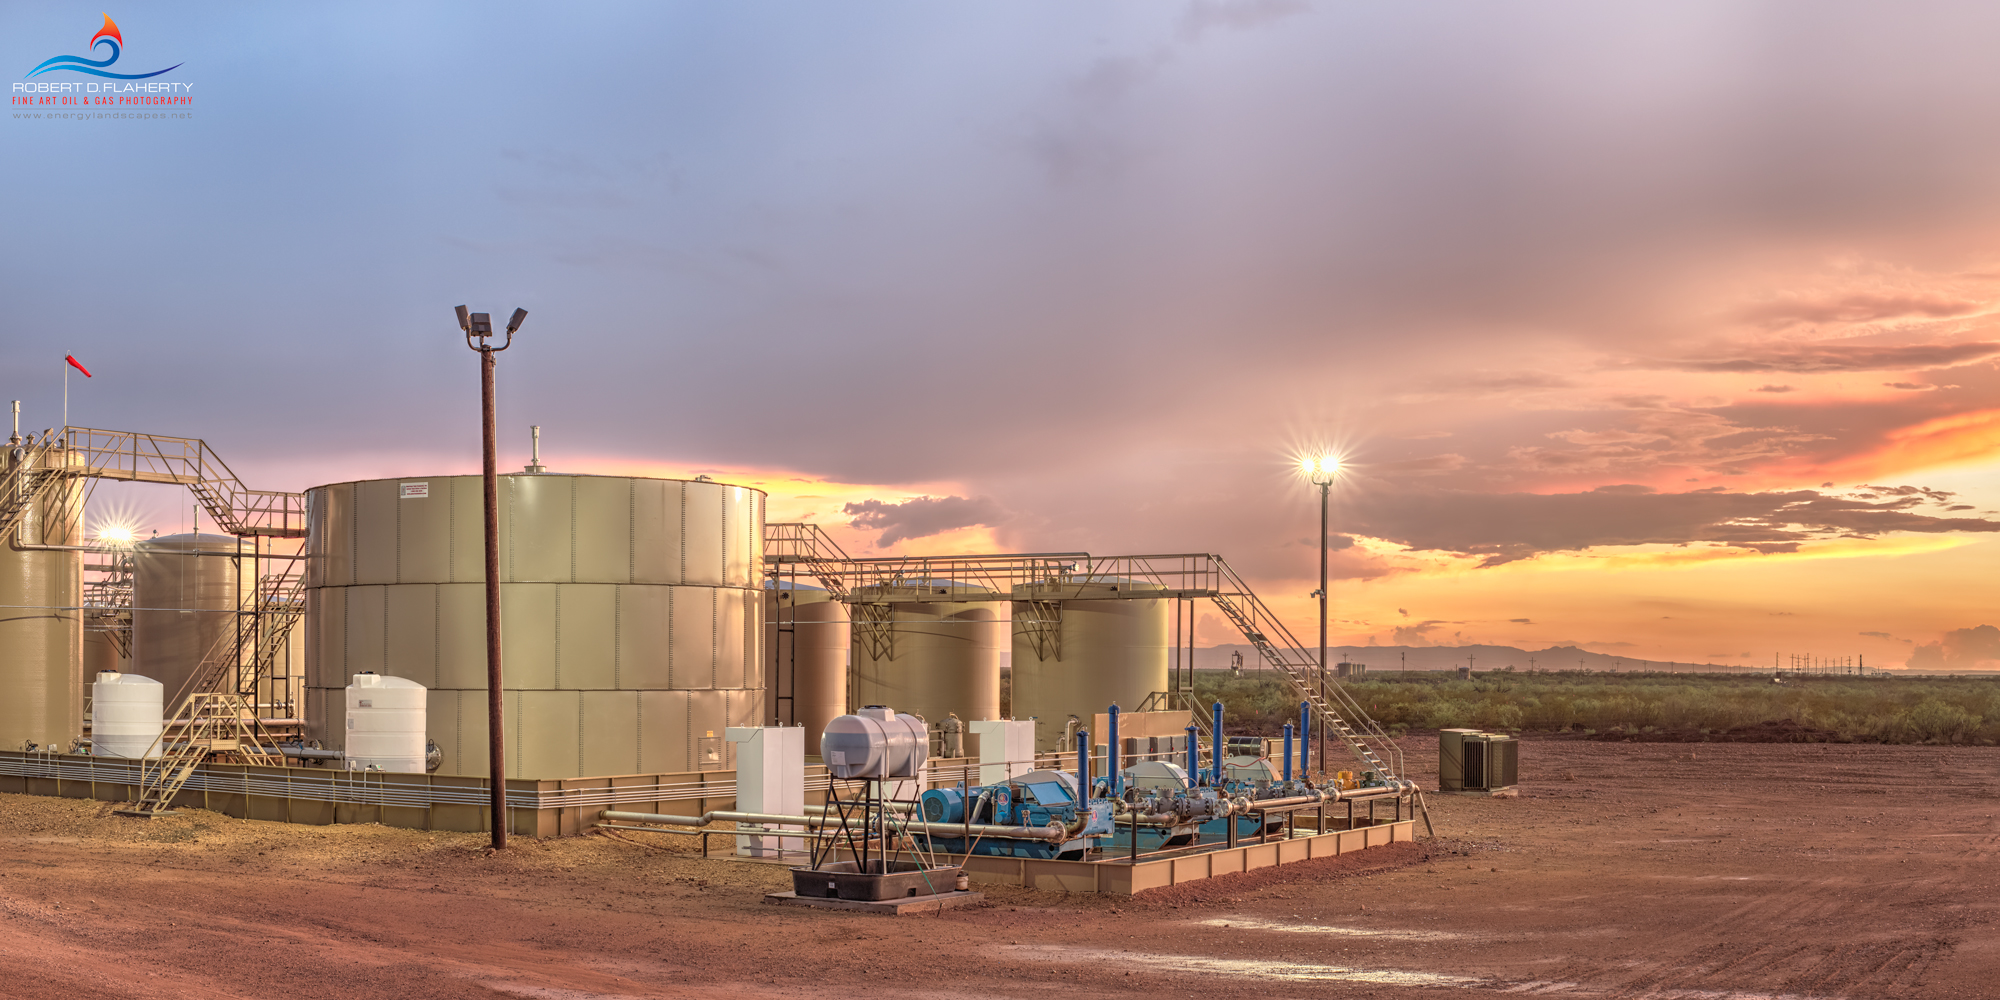 Delaware Basin, Permian Basin, SWD, salt water disposal, pipeline, Summer, sunset, thunderstorm, thundershower, networked SWD, network, photograph, Davis Mountains, photo